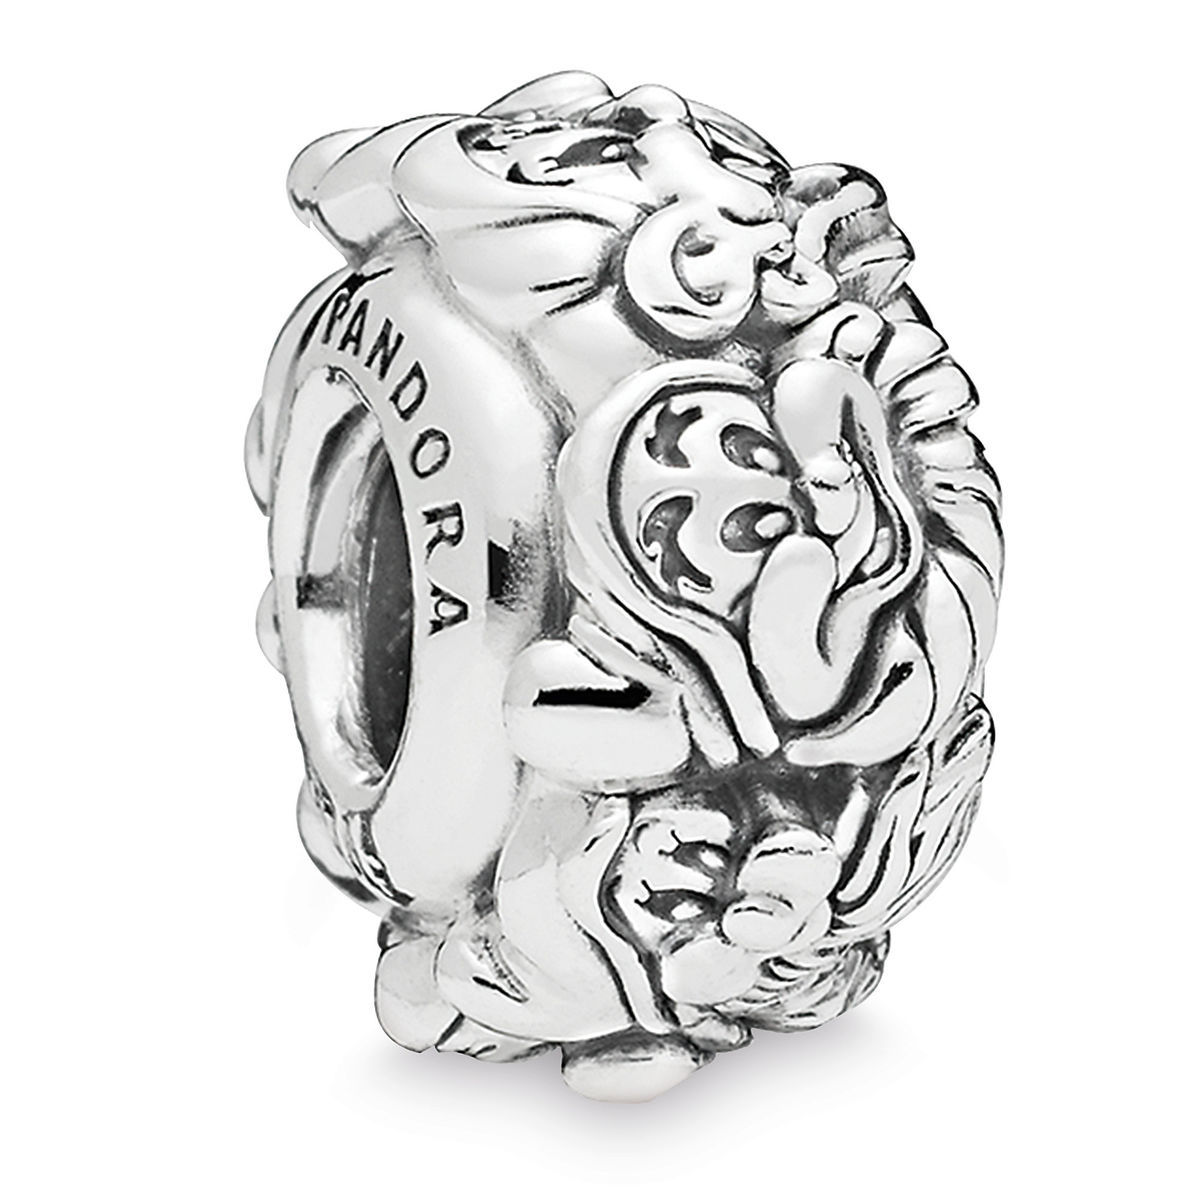 New Pandora Charms Coming Out 2018